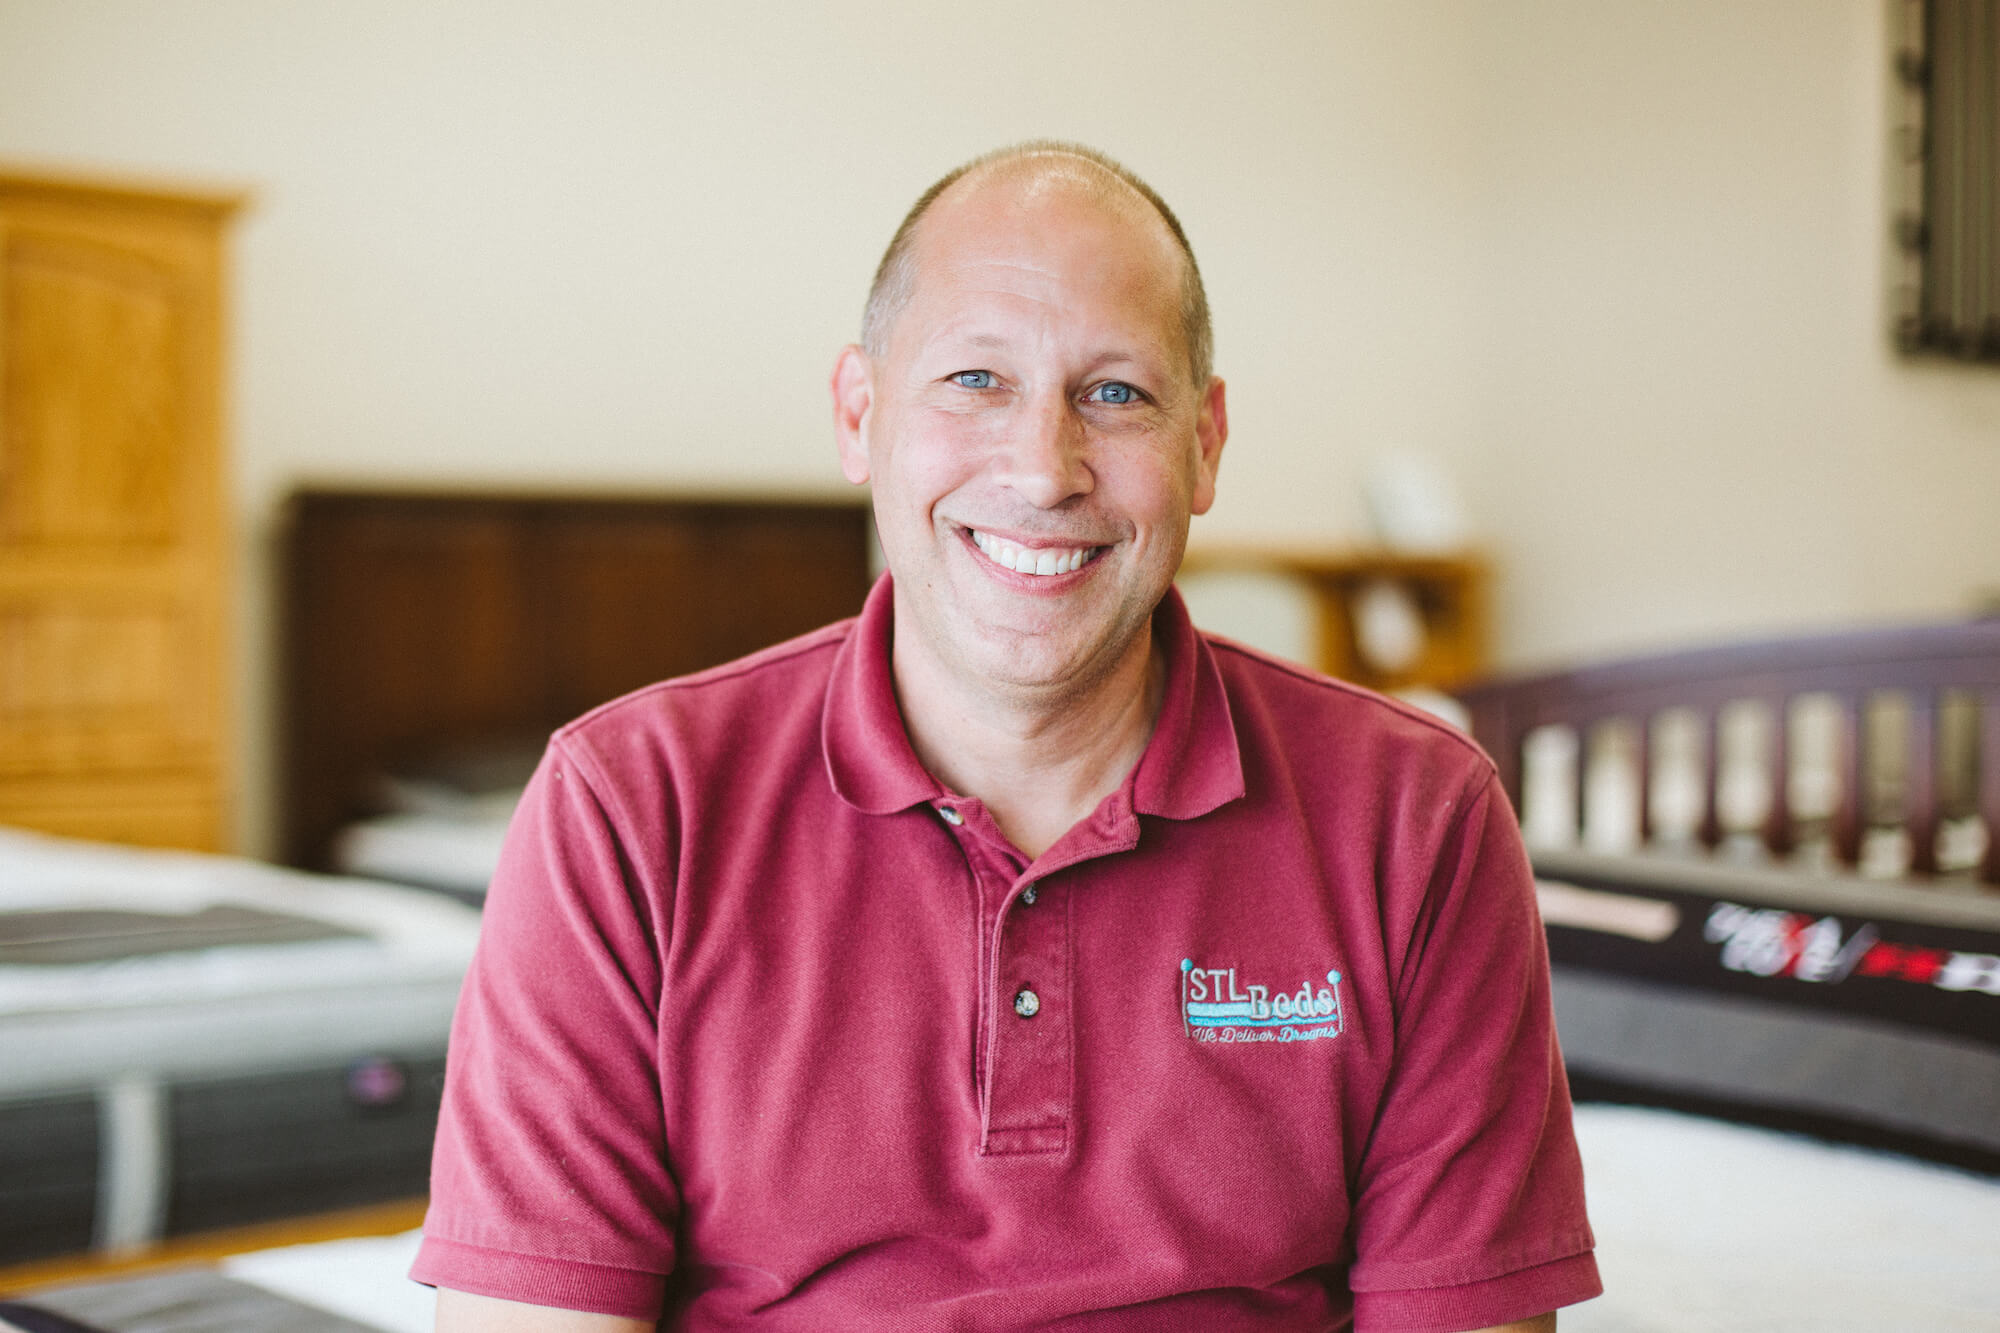 Doug Belleville is the owner at STL Beds in St. Louis, MO